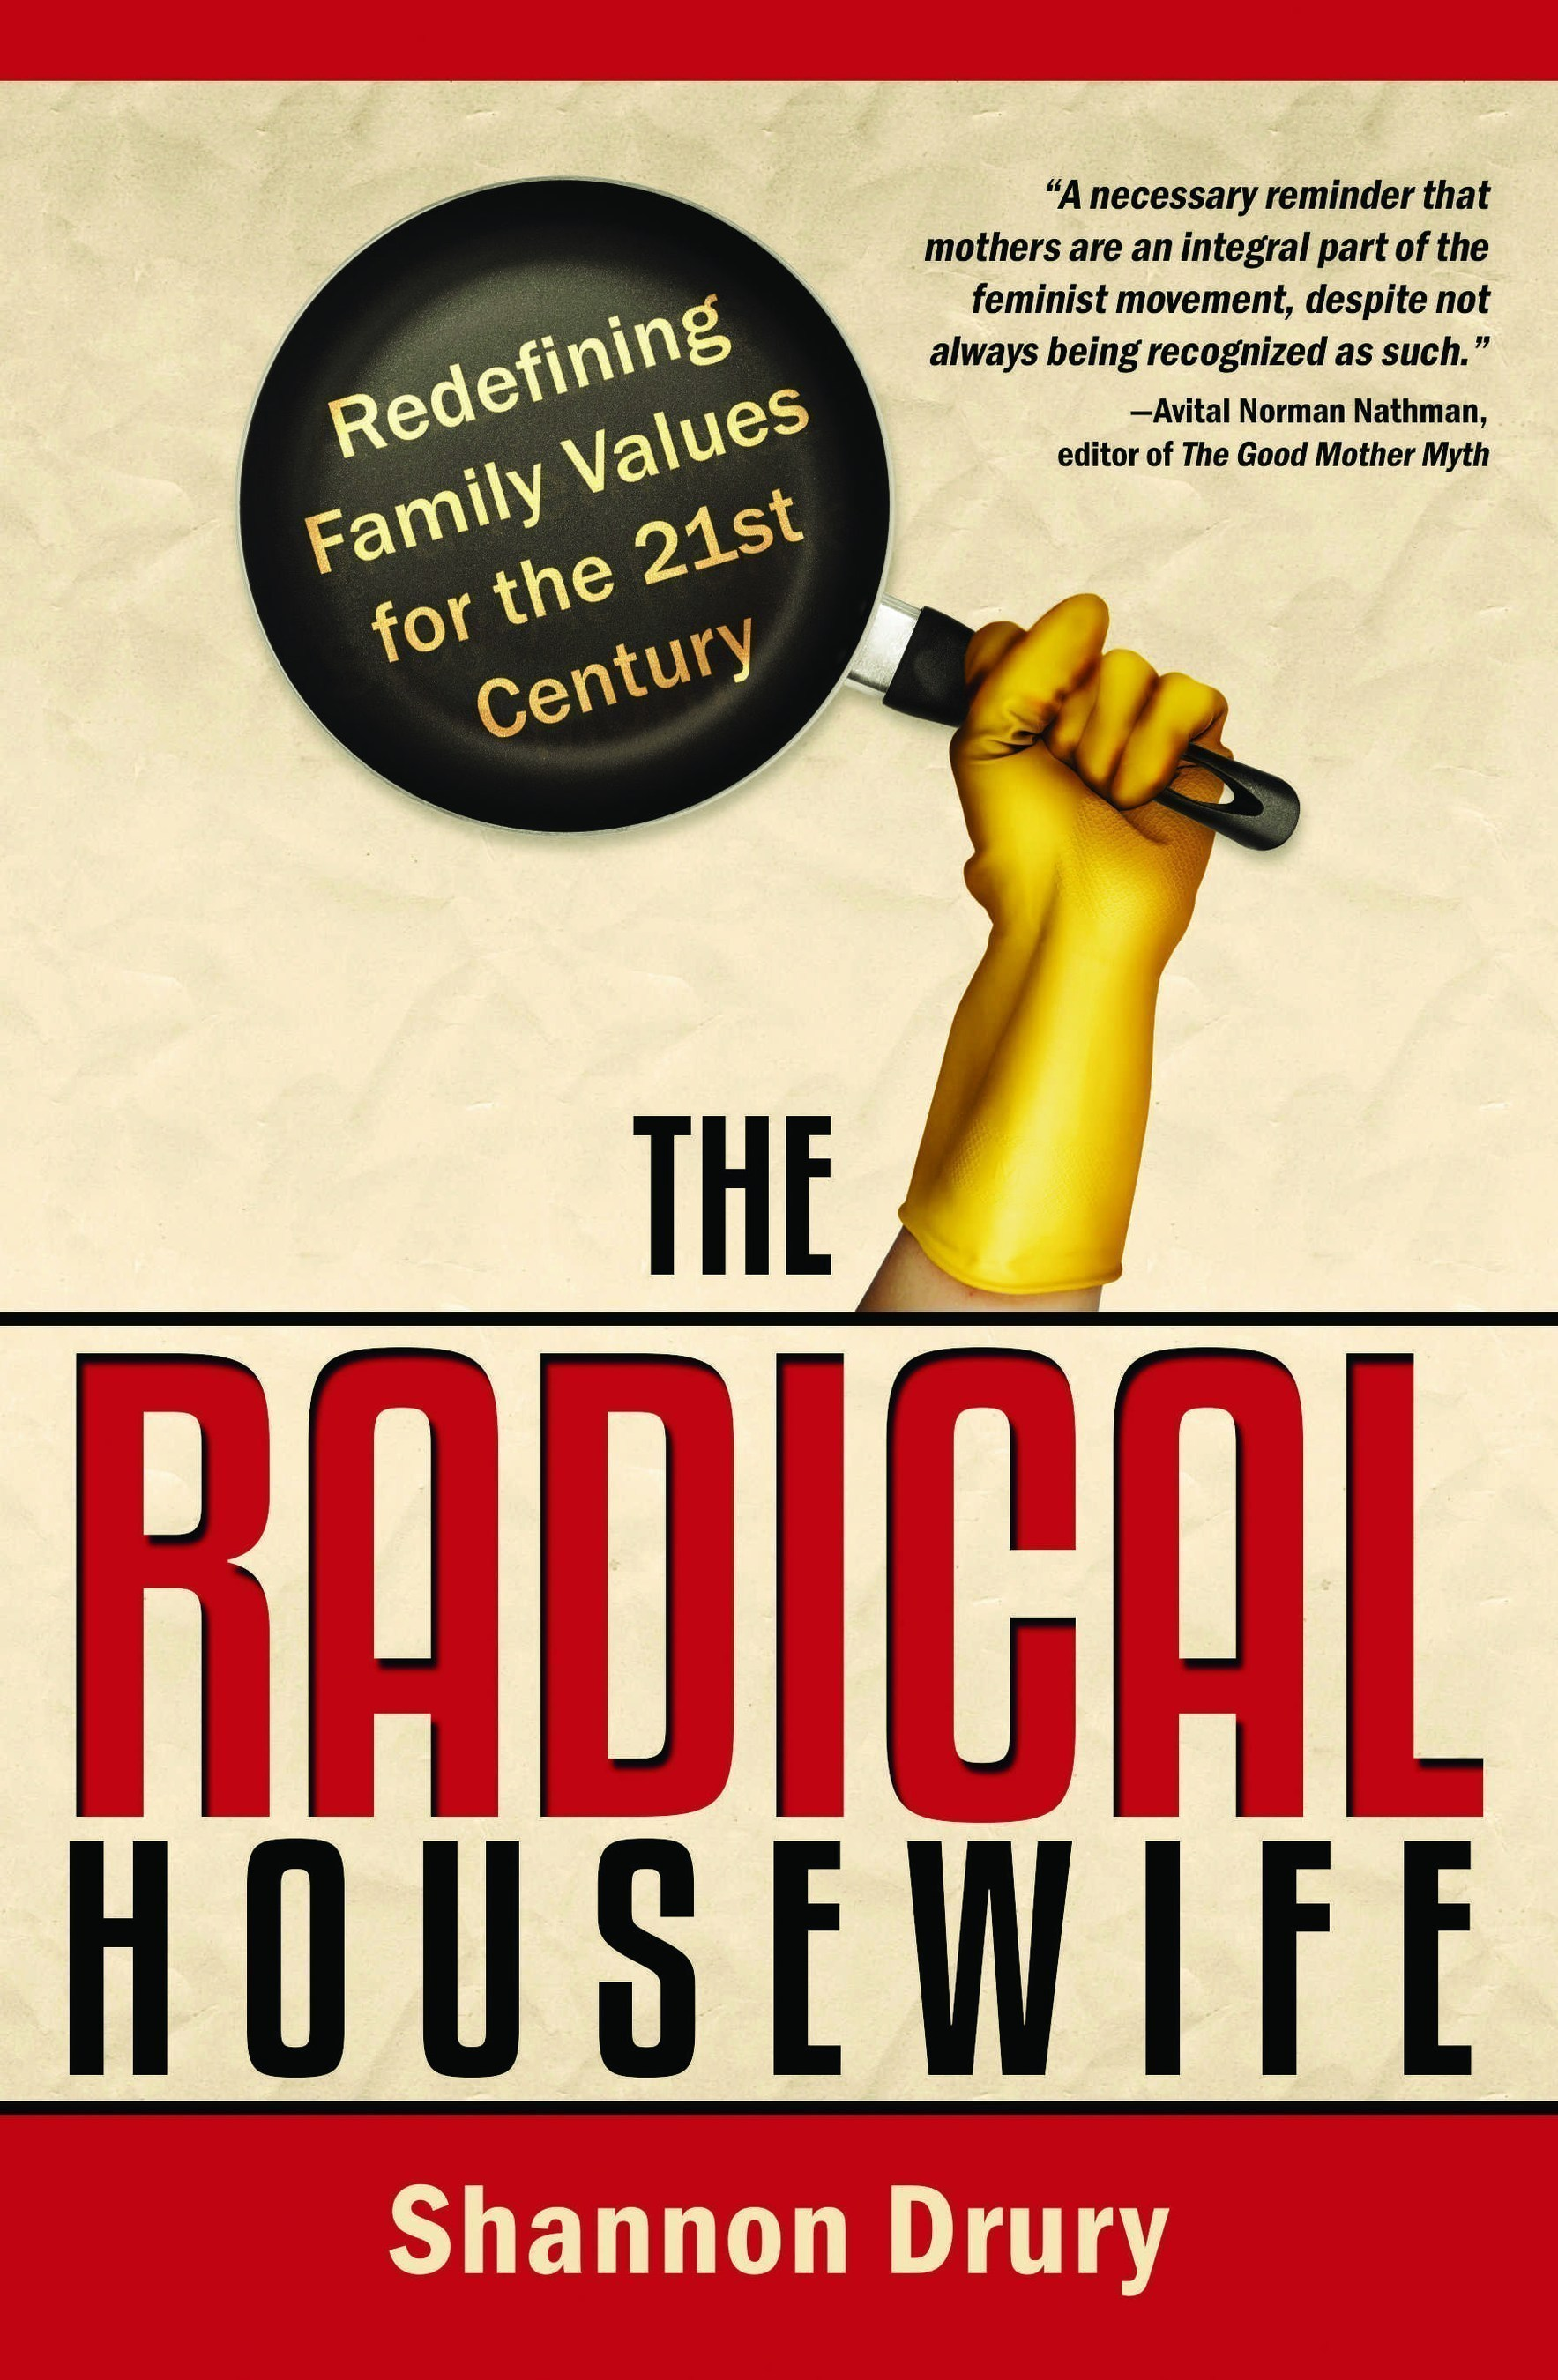 The Radical Housewife: Transforming Family Values for the 21st Century, by Shannon Drury. In paperback and ebook wherever books are sold. From Medusa's Muse Press www.medusasmuse.com